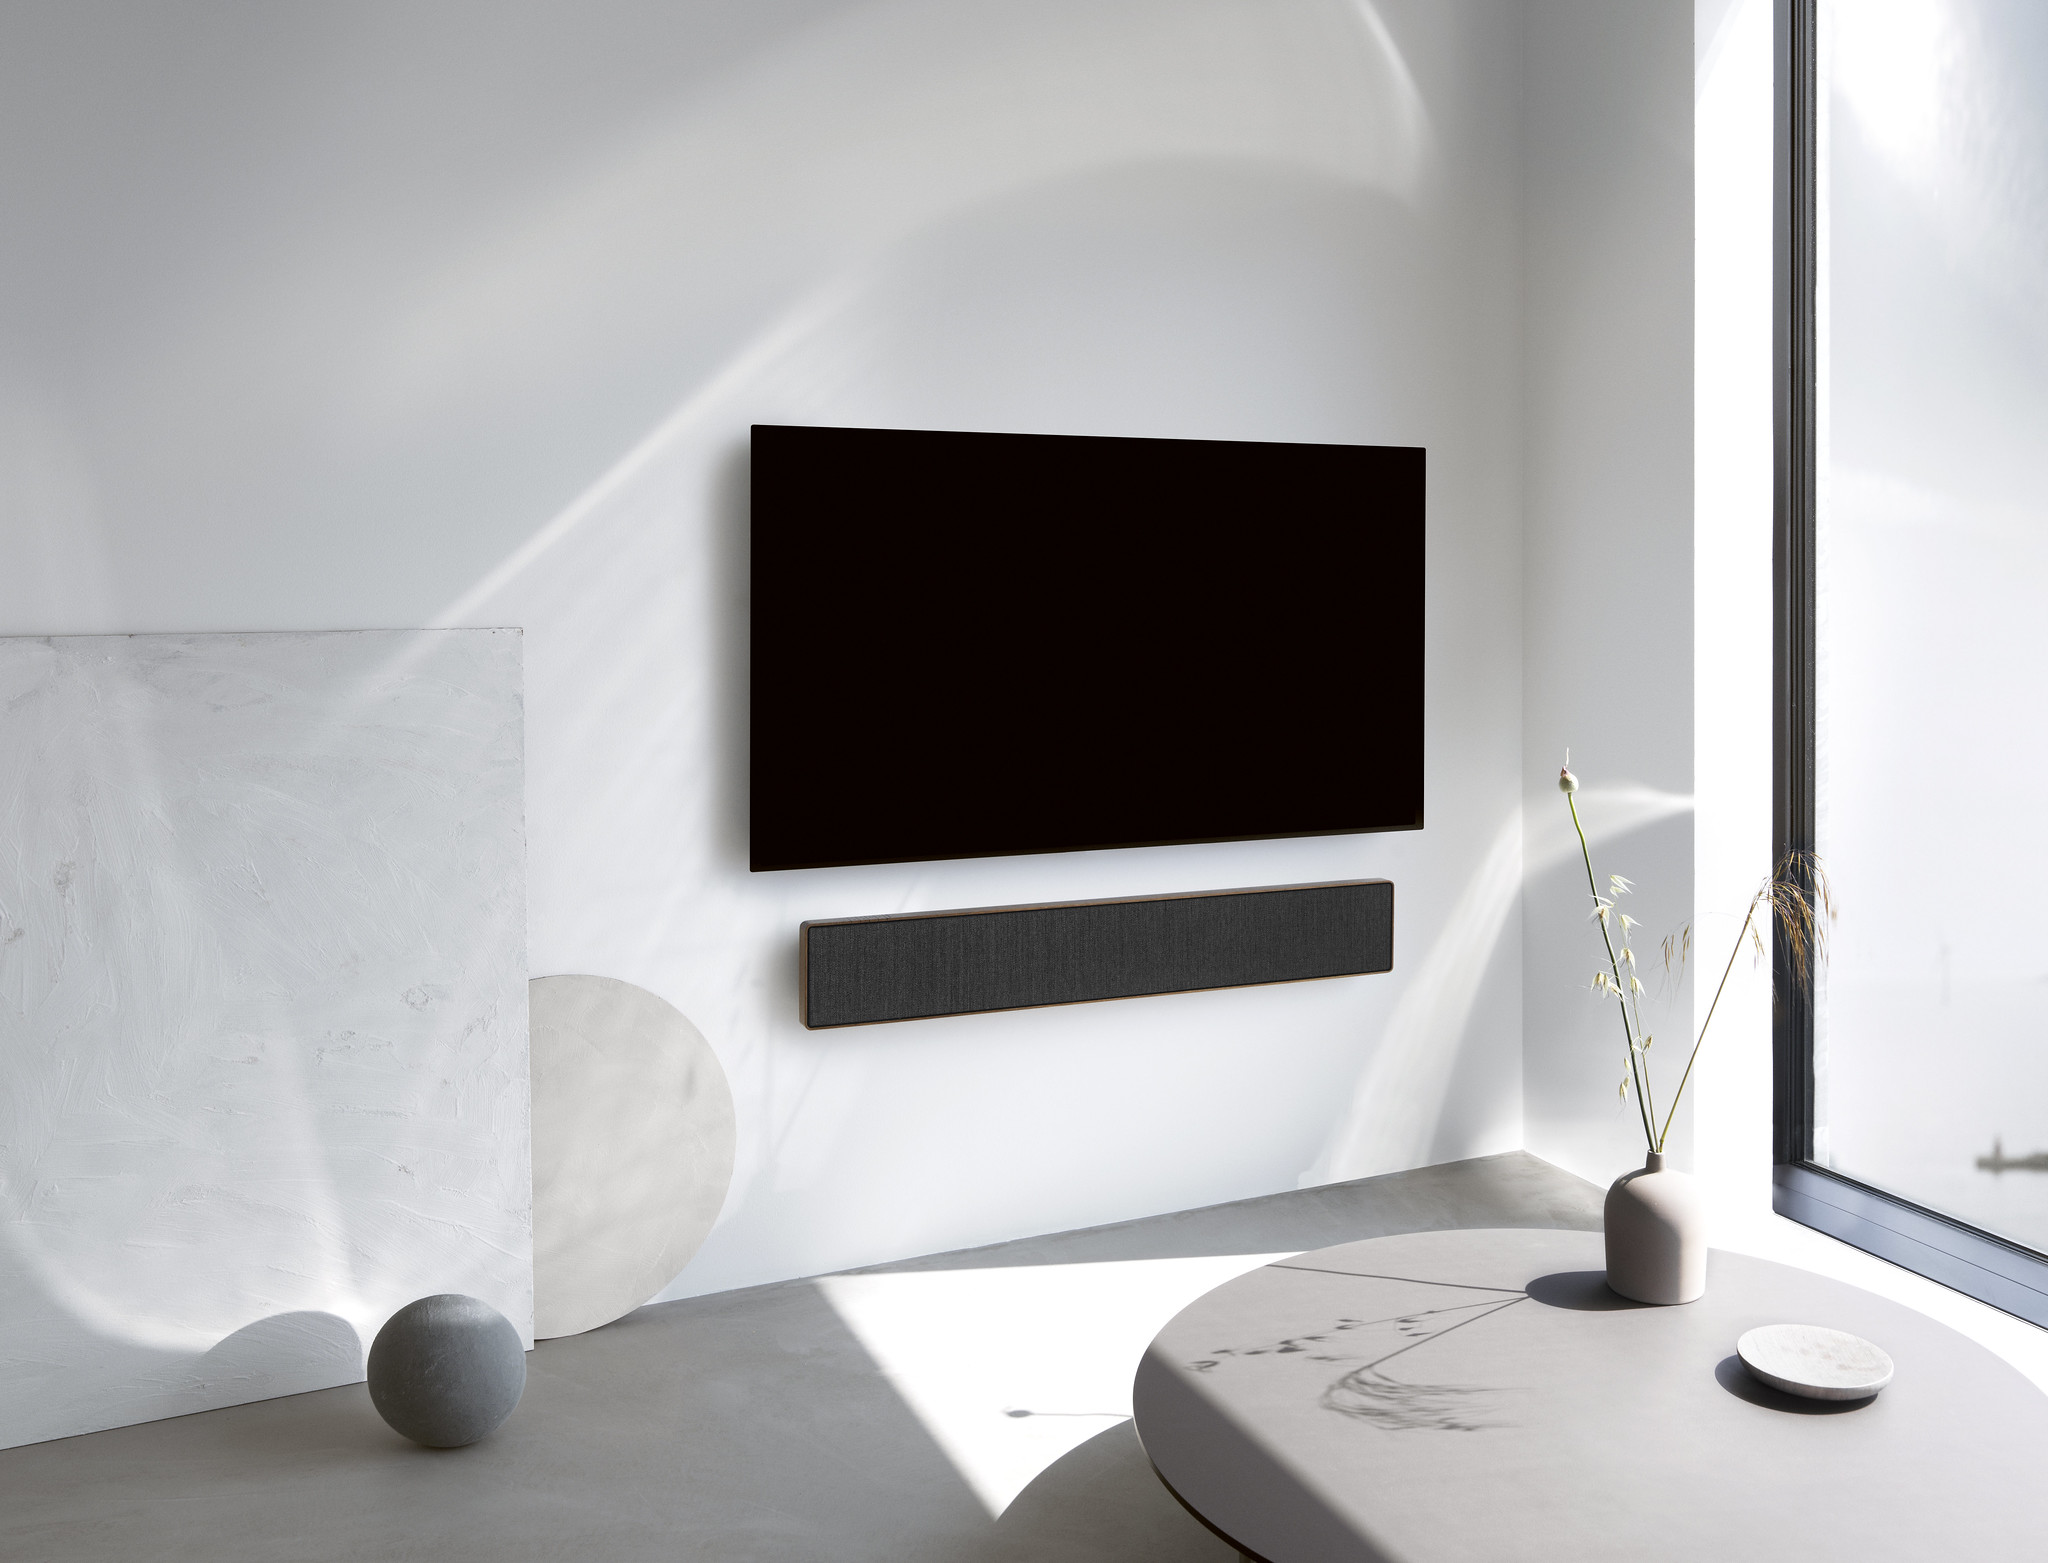 Beosound Stage adds B&O's spectacular audio to any TV